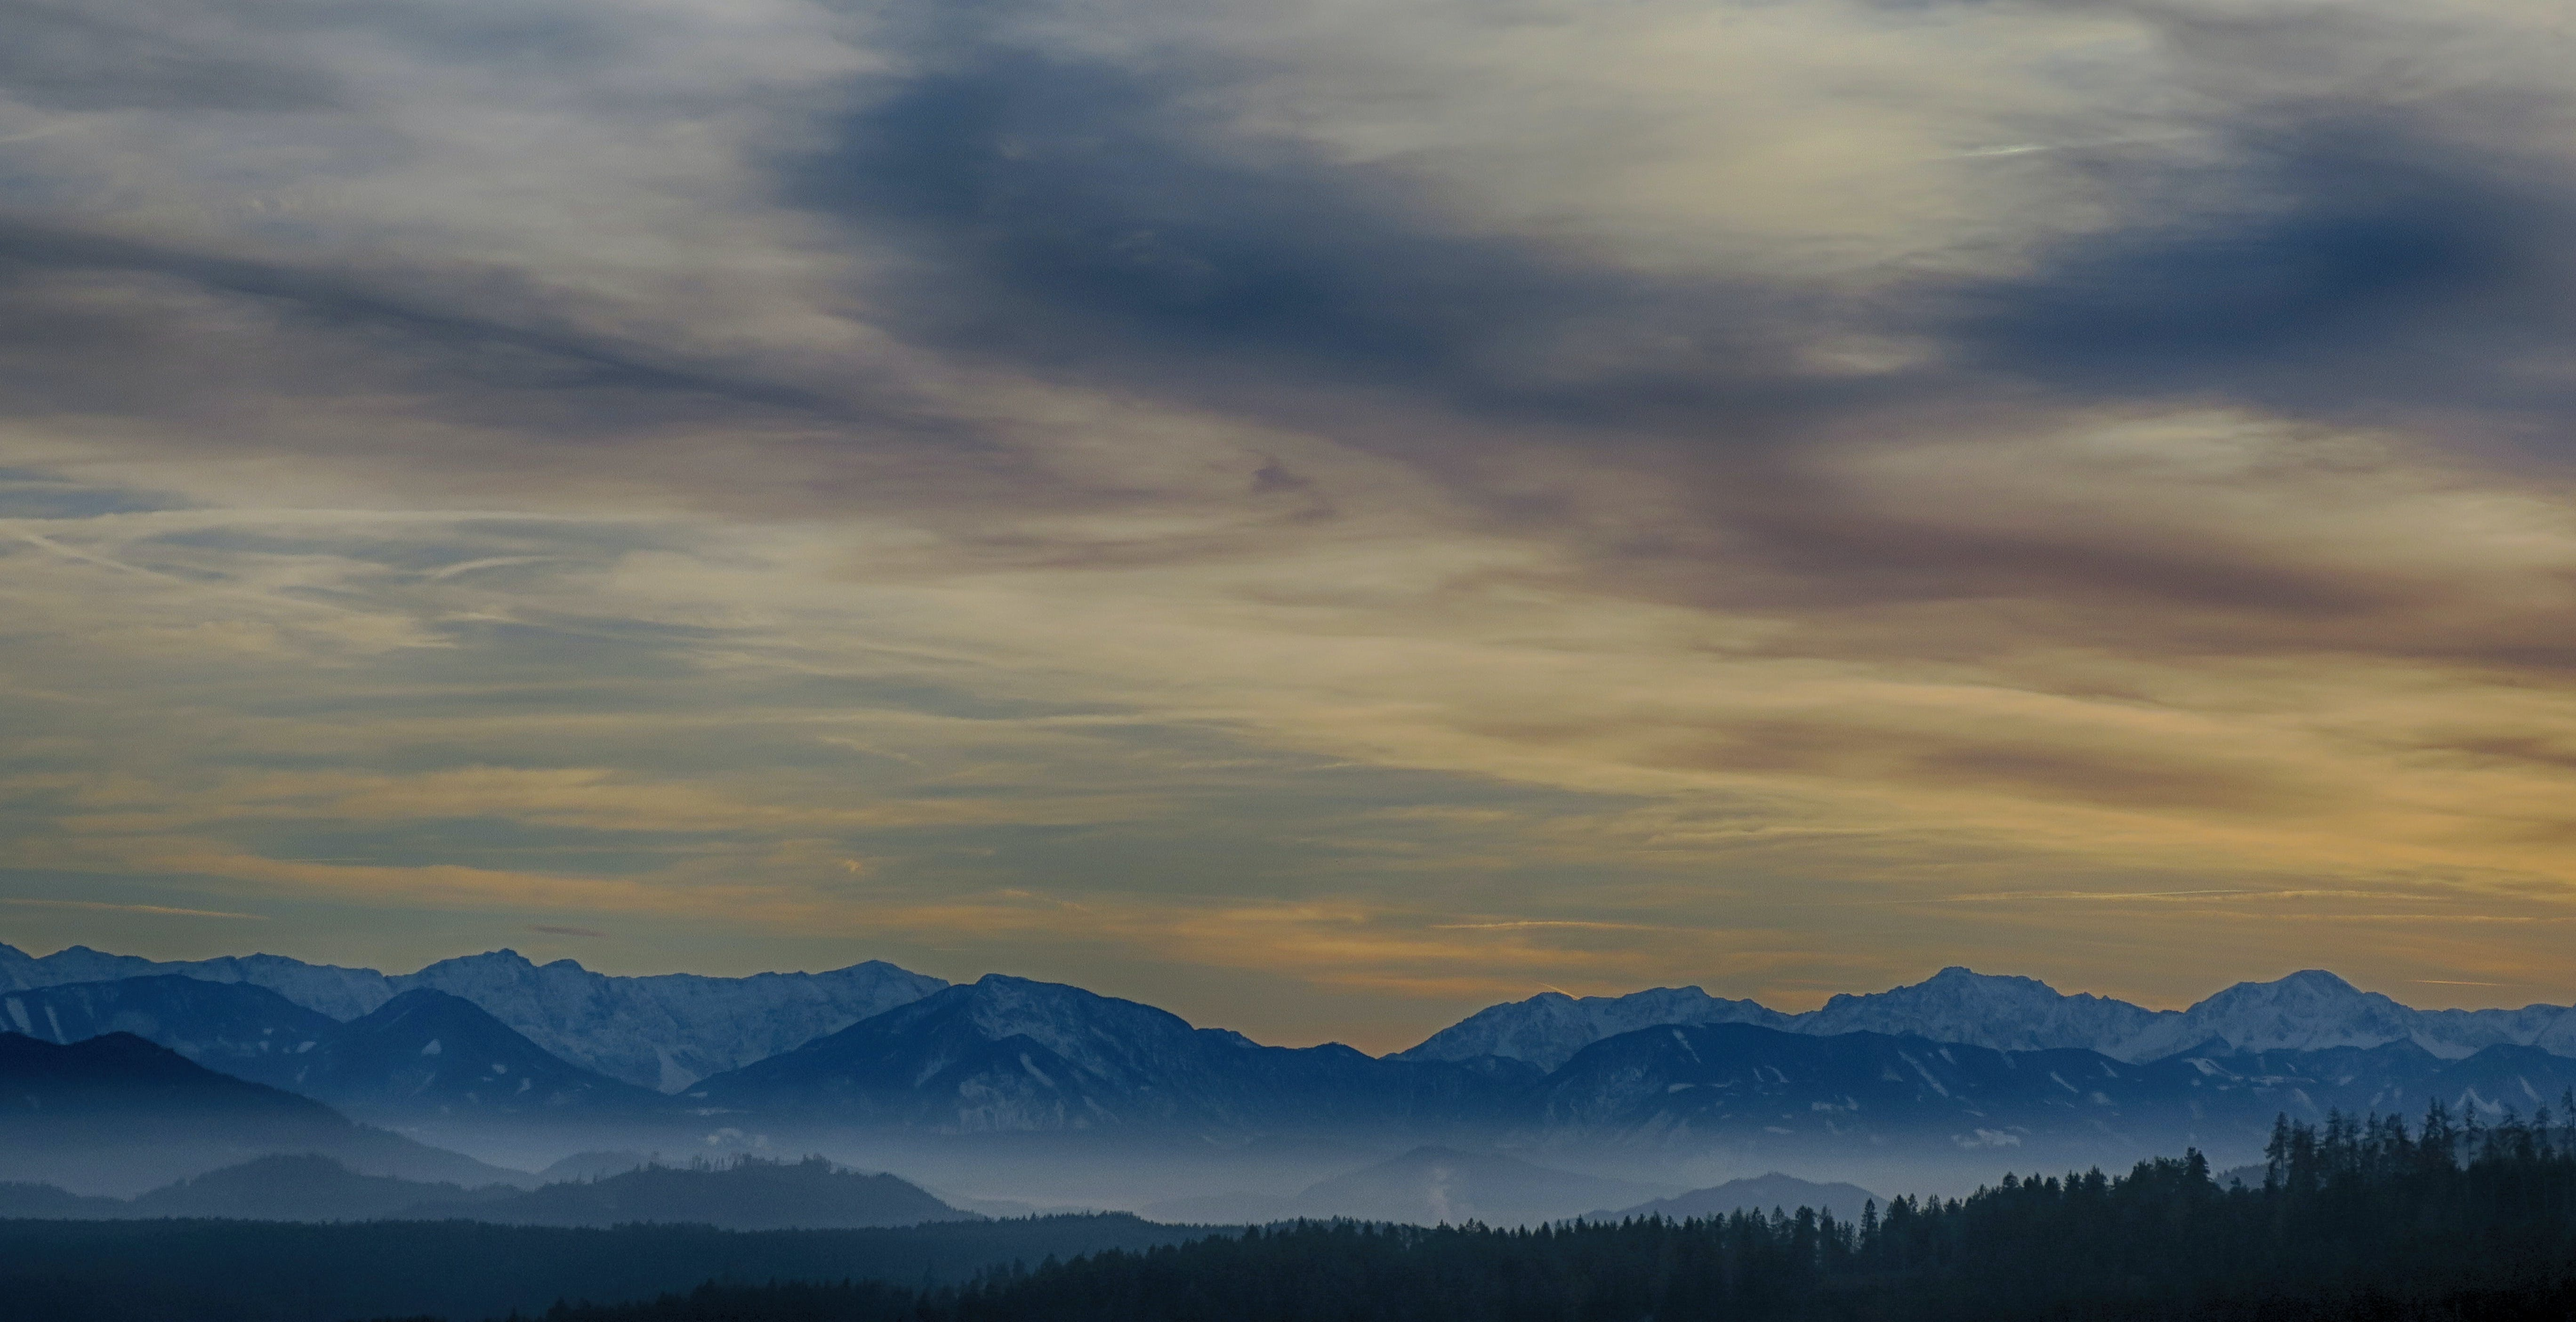 Tall Mountains Surrounded by Fogs Below the Clouds High-saturated Photography